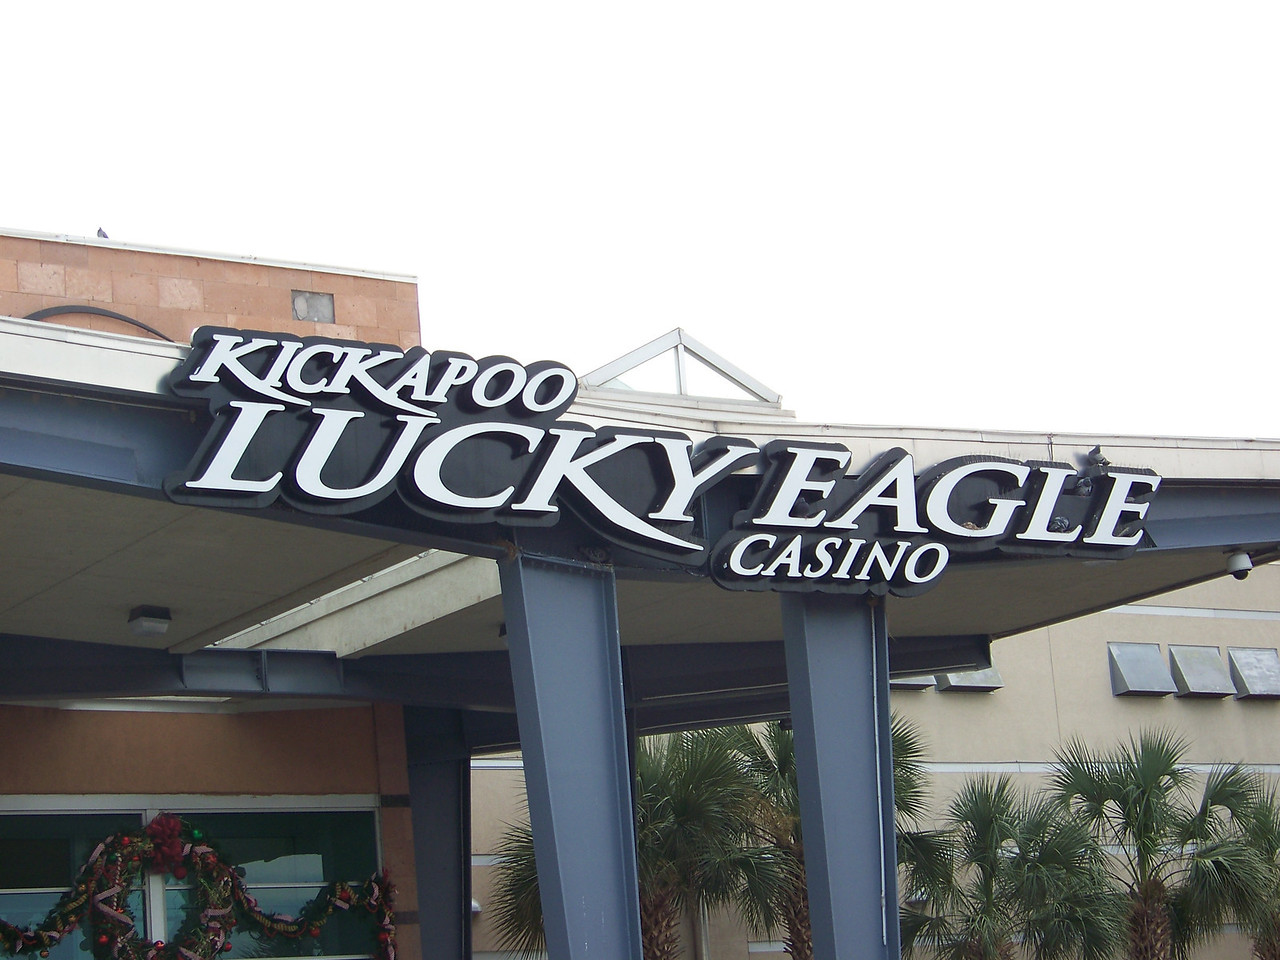 The Lucky Eagle is the first, and so far only, casino in all of Texas.